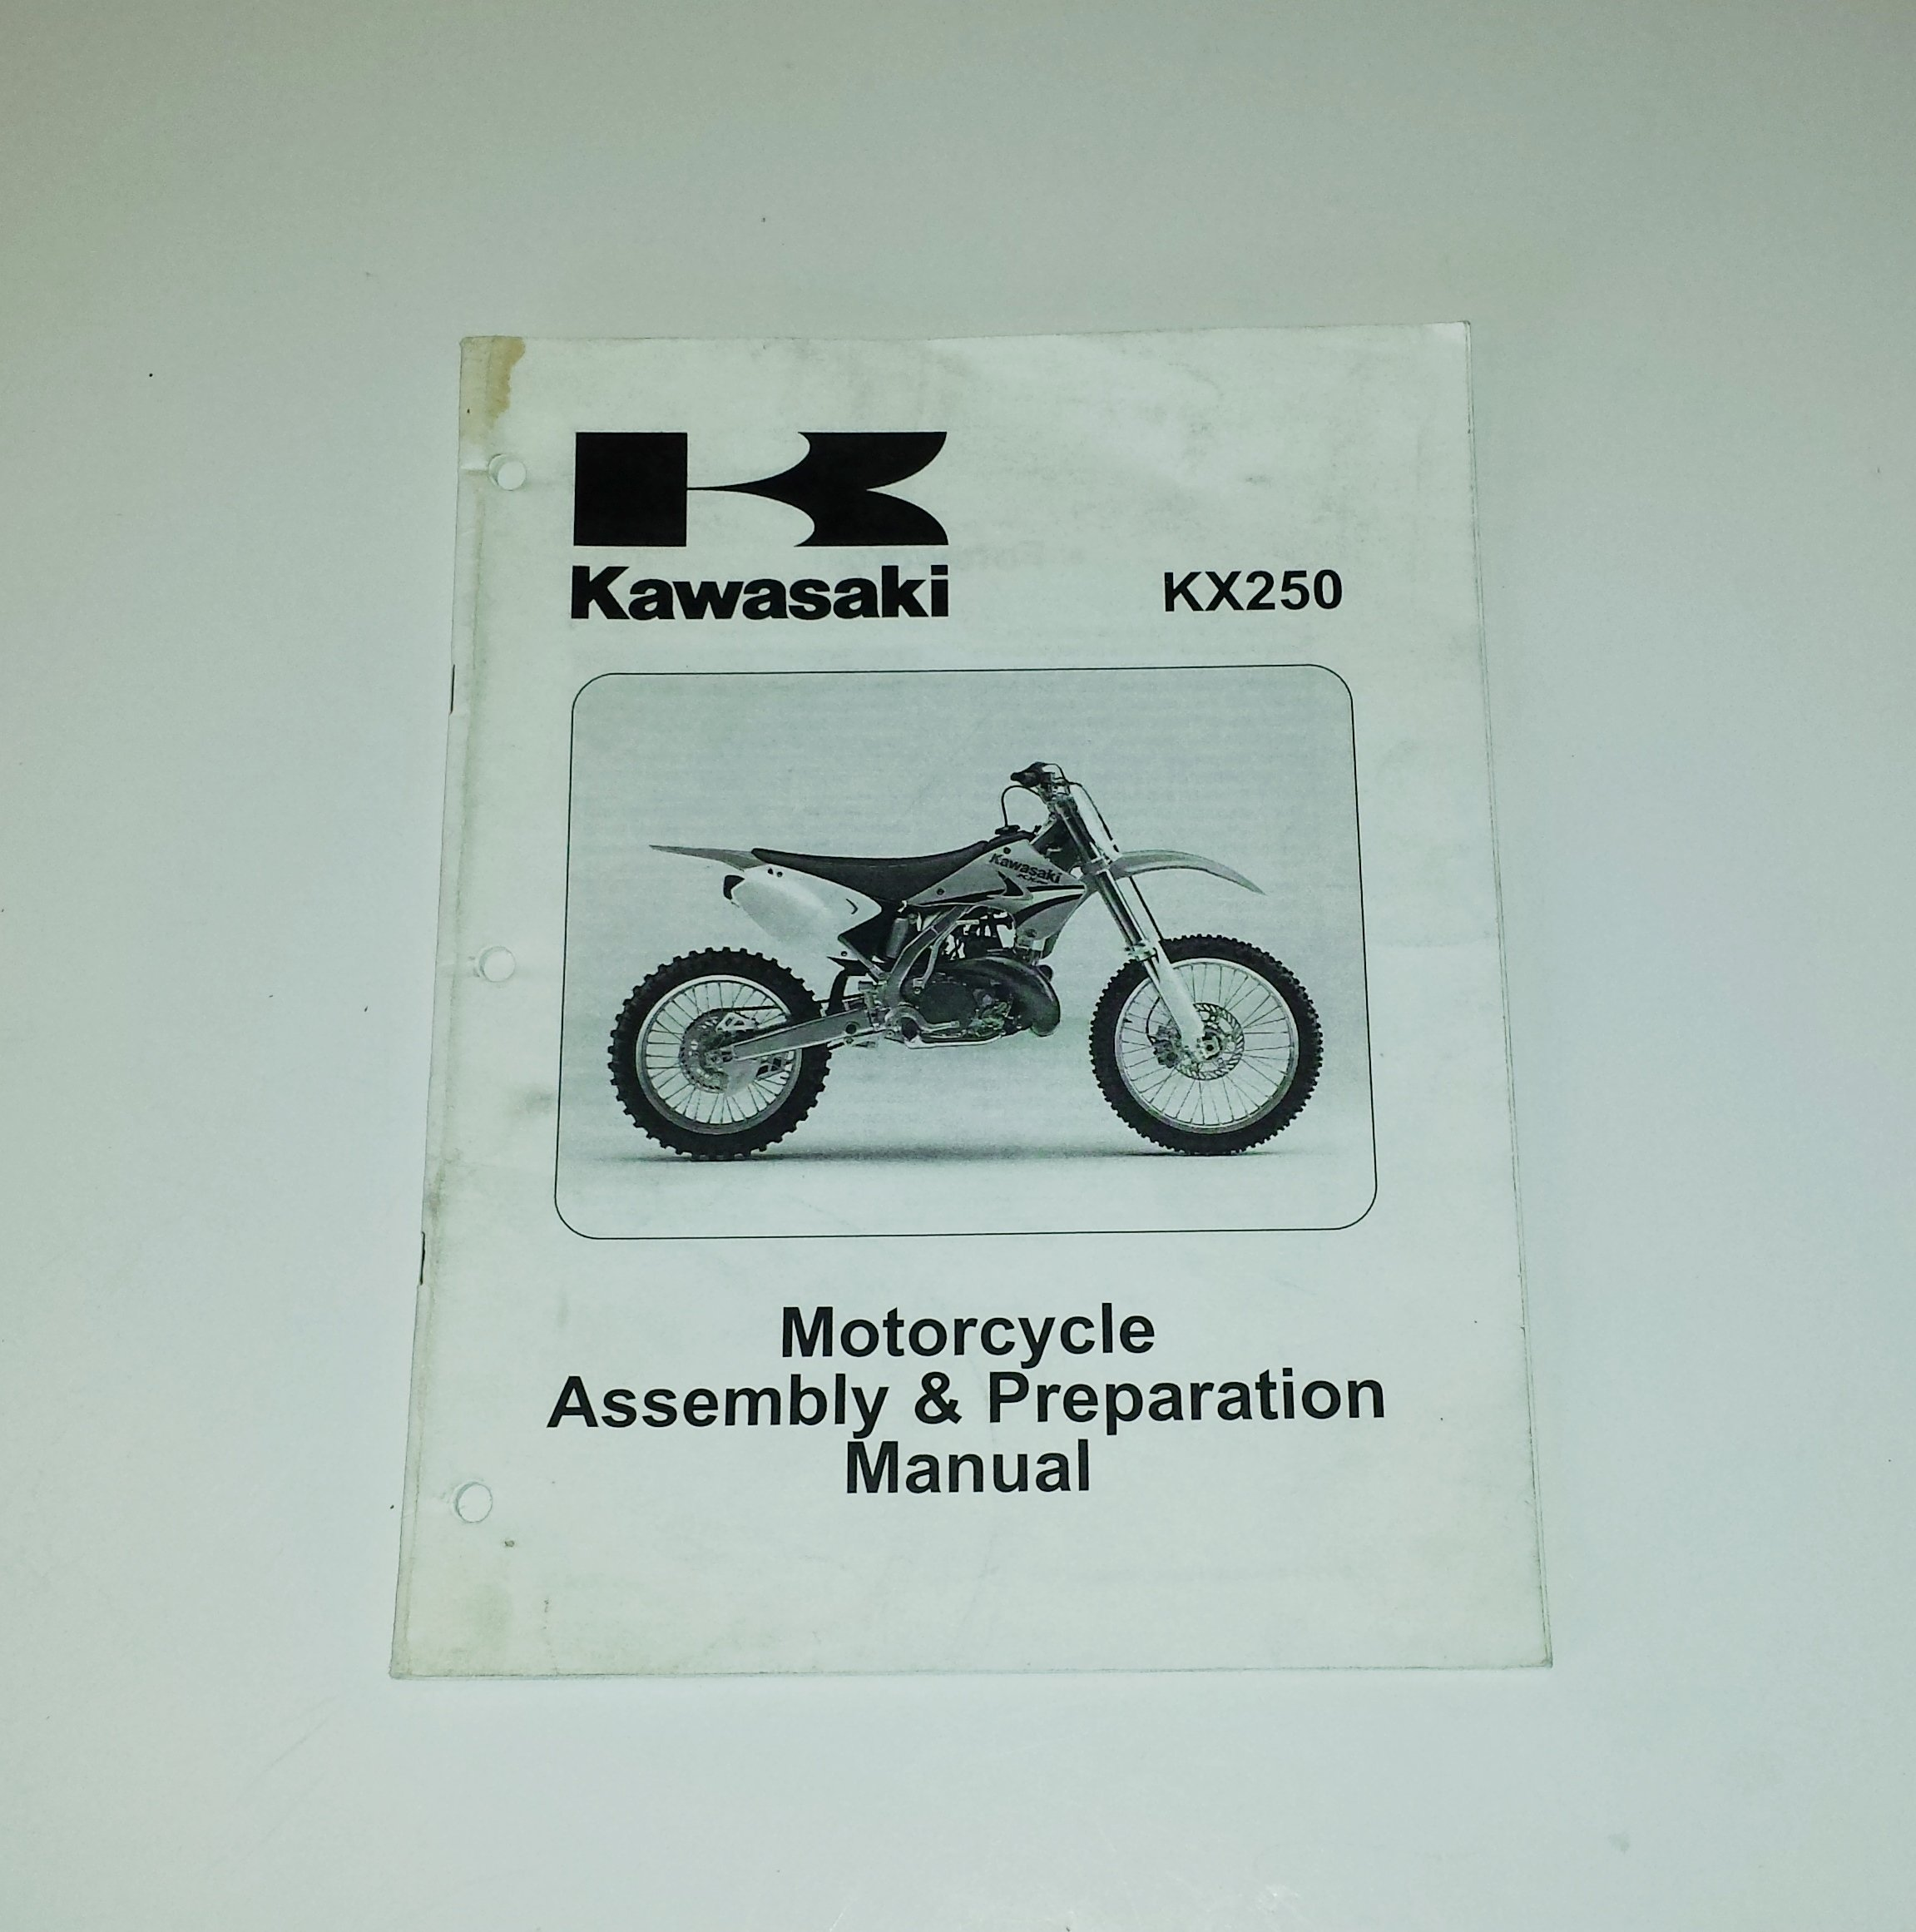 96 Suzuki Rm 125 Manual Ebook 1988 Gsxr 750 Slingshot Wiring Diagram Array Dixie Narco 260 Rh Bitlab Solutions